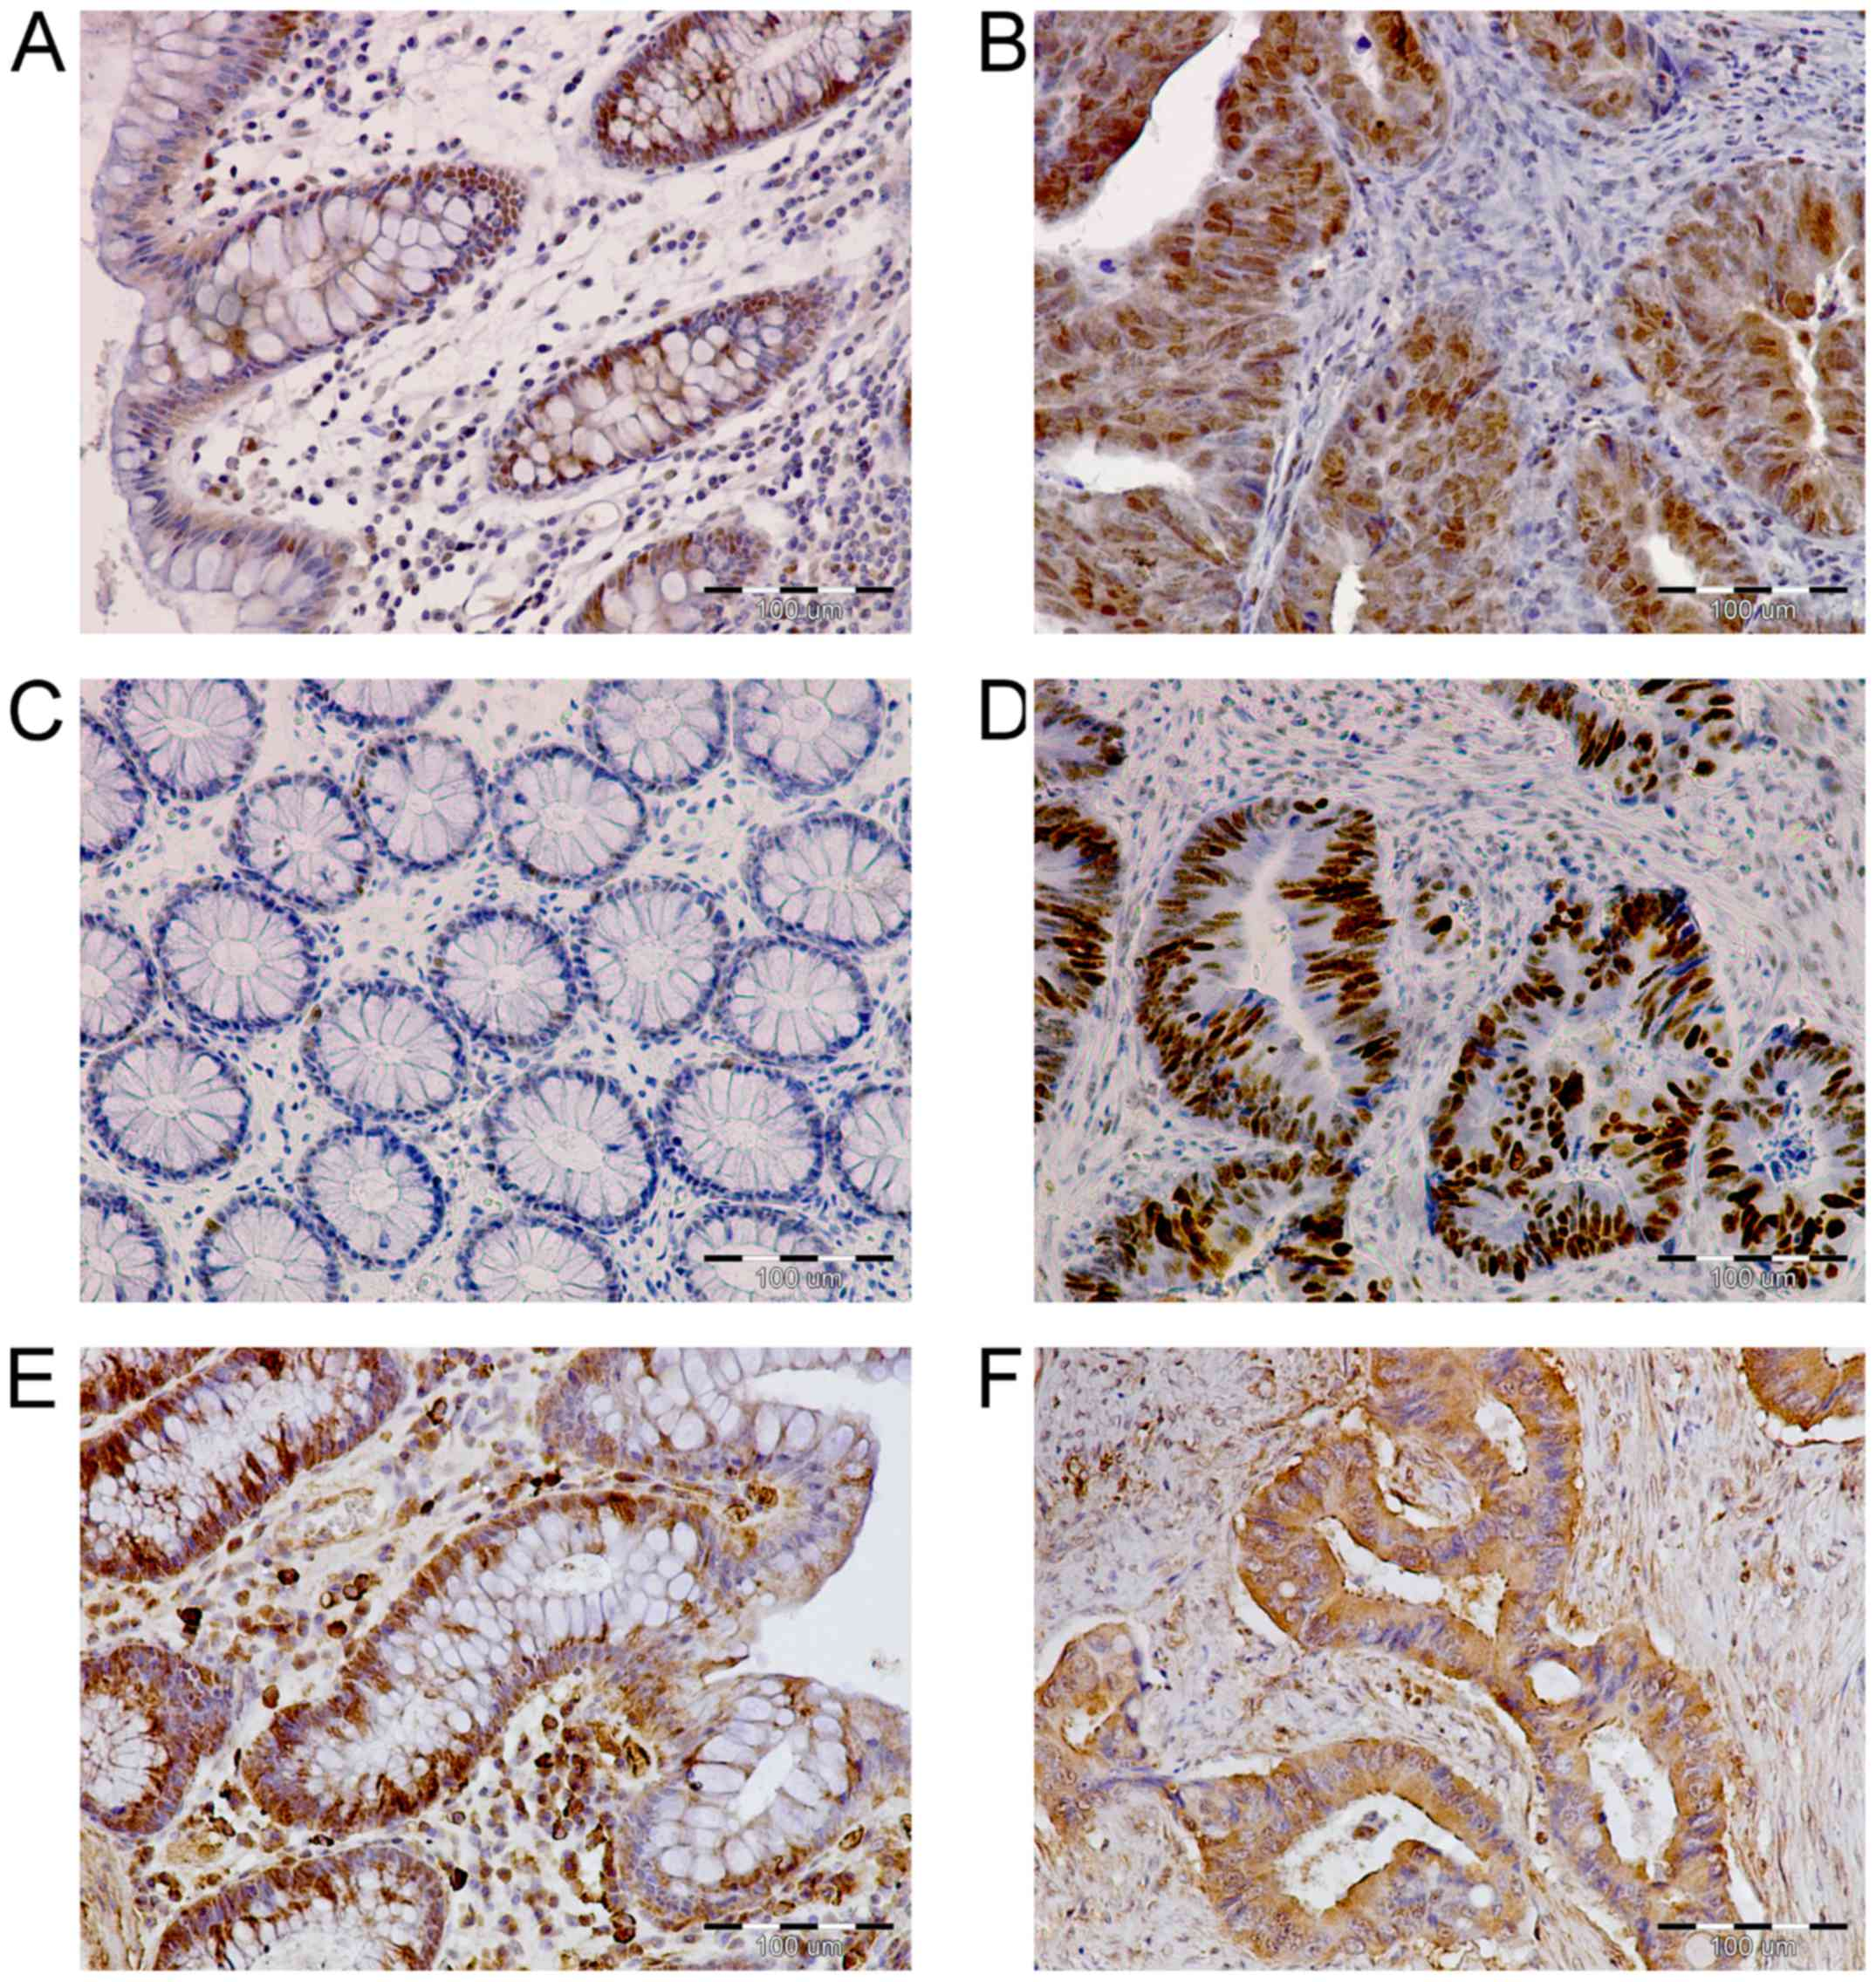 Expression of the ep300 tp53 and bax genes in colorectal cancer expression of p300 p53 and bax proteins in colorectal cancer crc and unchanged colon mucosa as assessed by immunohistochemistry biocorpaavc